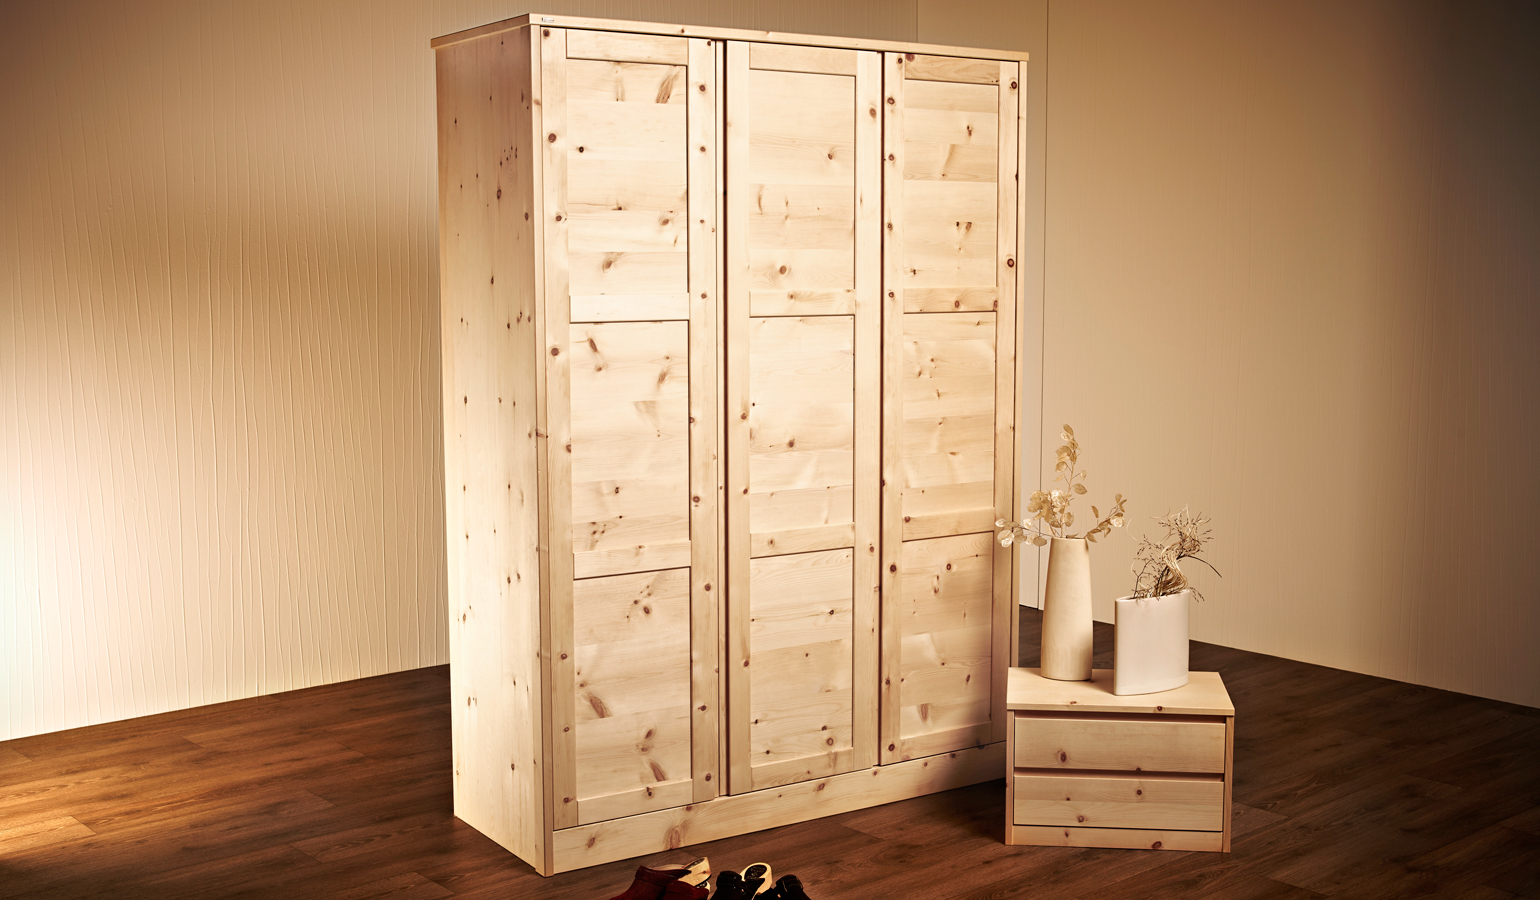 kleiderschrank aus zirbe 153x208x58 cm kleiderkasten aus arve holzkasten ebay. Black Bedroom Furniture Sets. Home Design Ideas